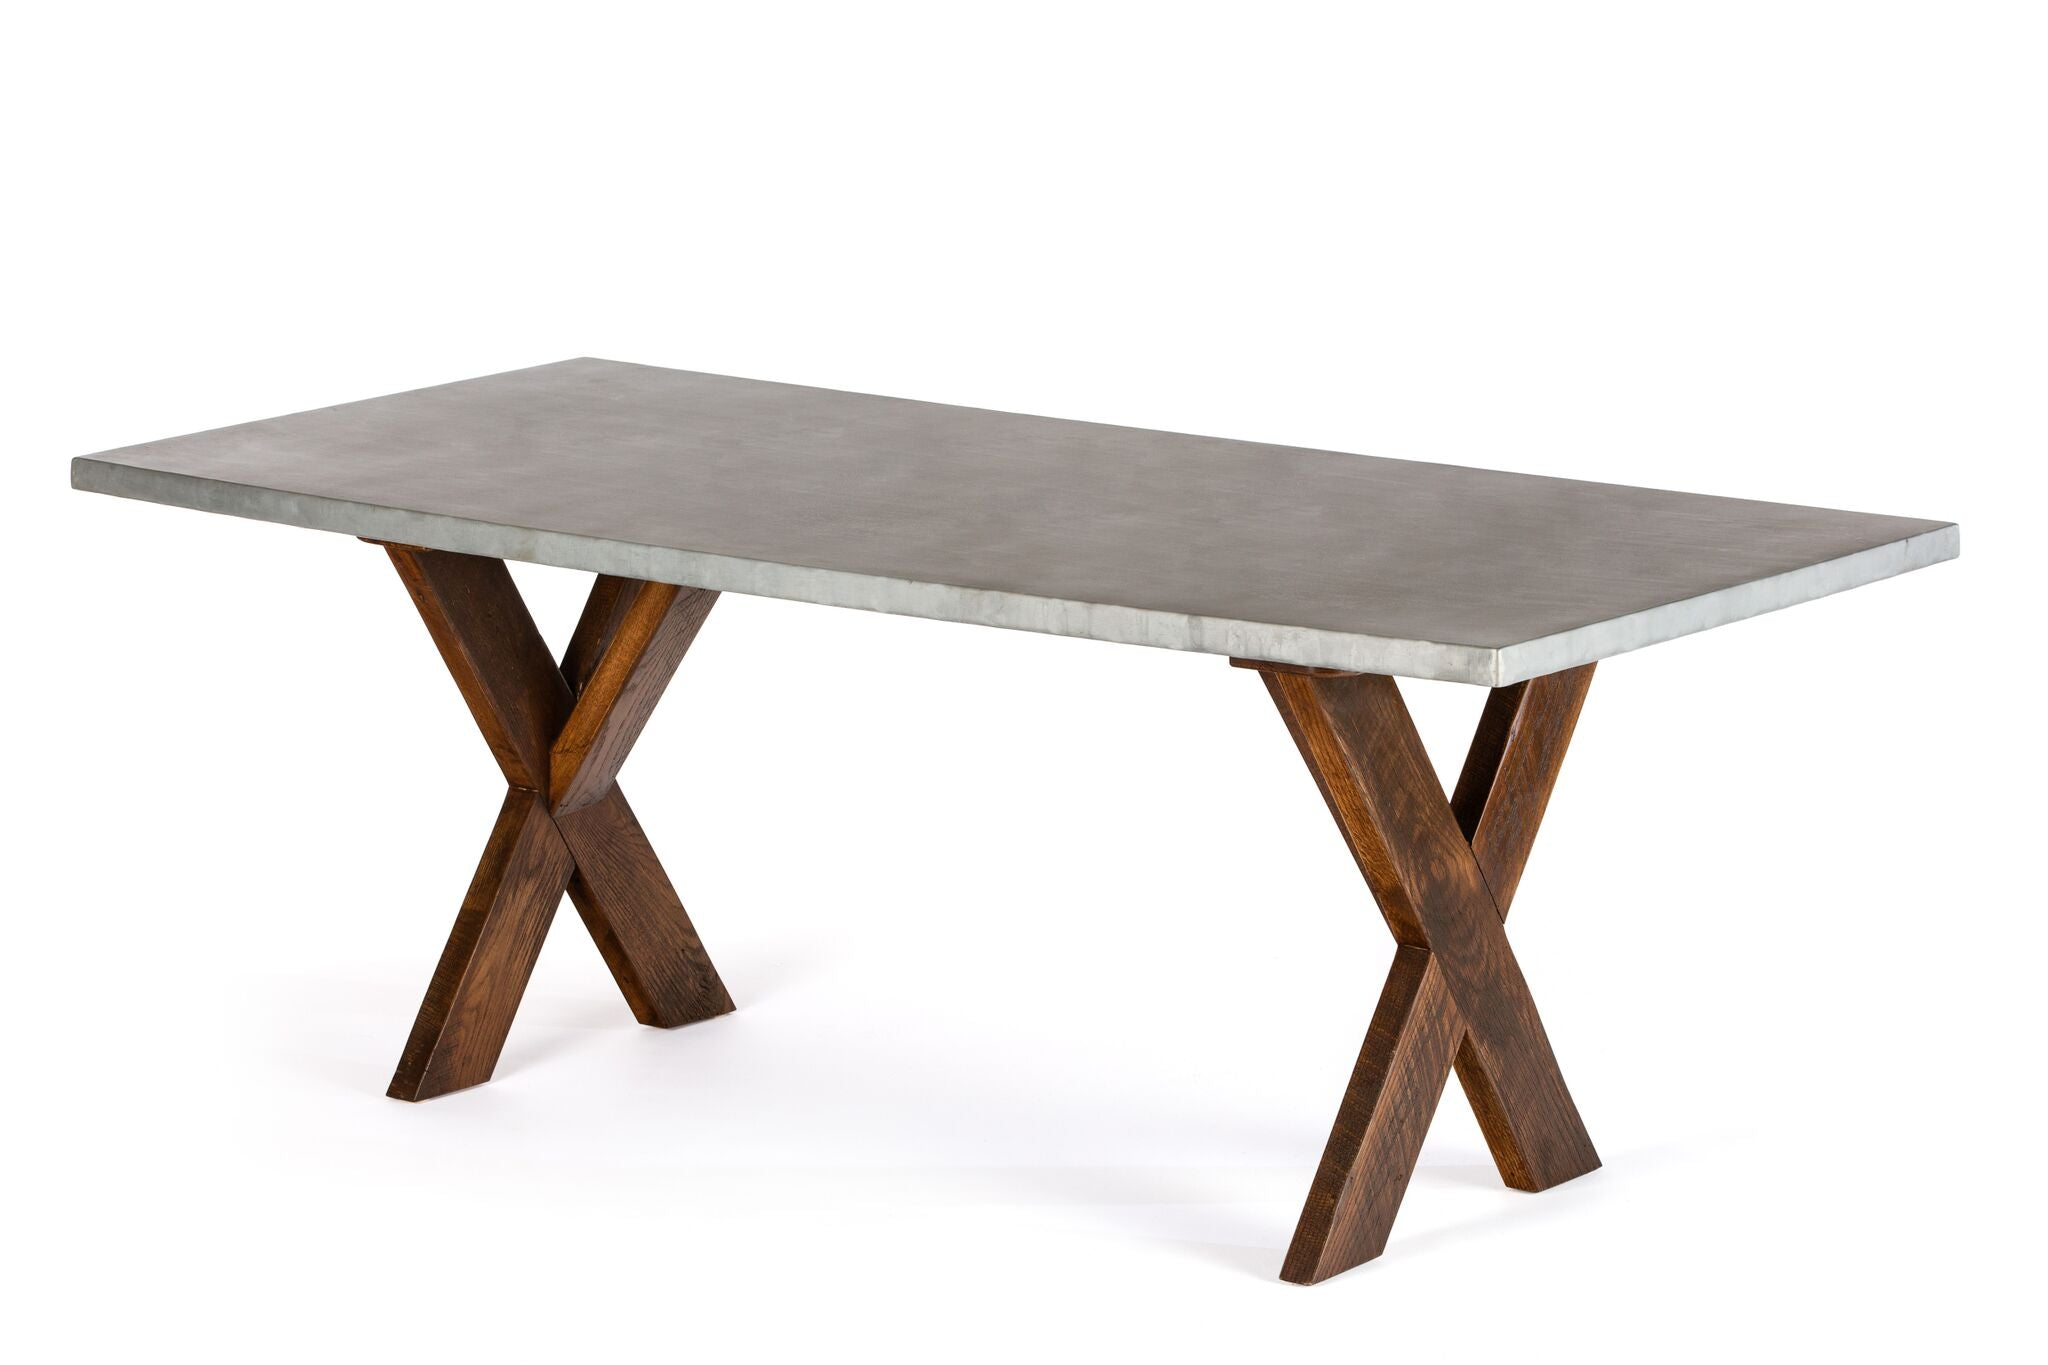 "Zinc Rectangular Table | X Base Trestle Table | CLASSIC | White Wash on Reclaimed Oak | CUSTOM SIZE 72""L 32""W 30""H 